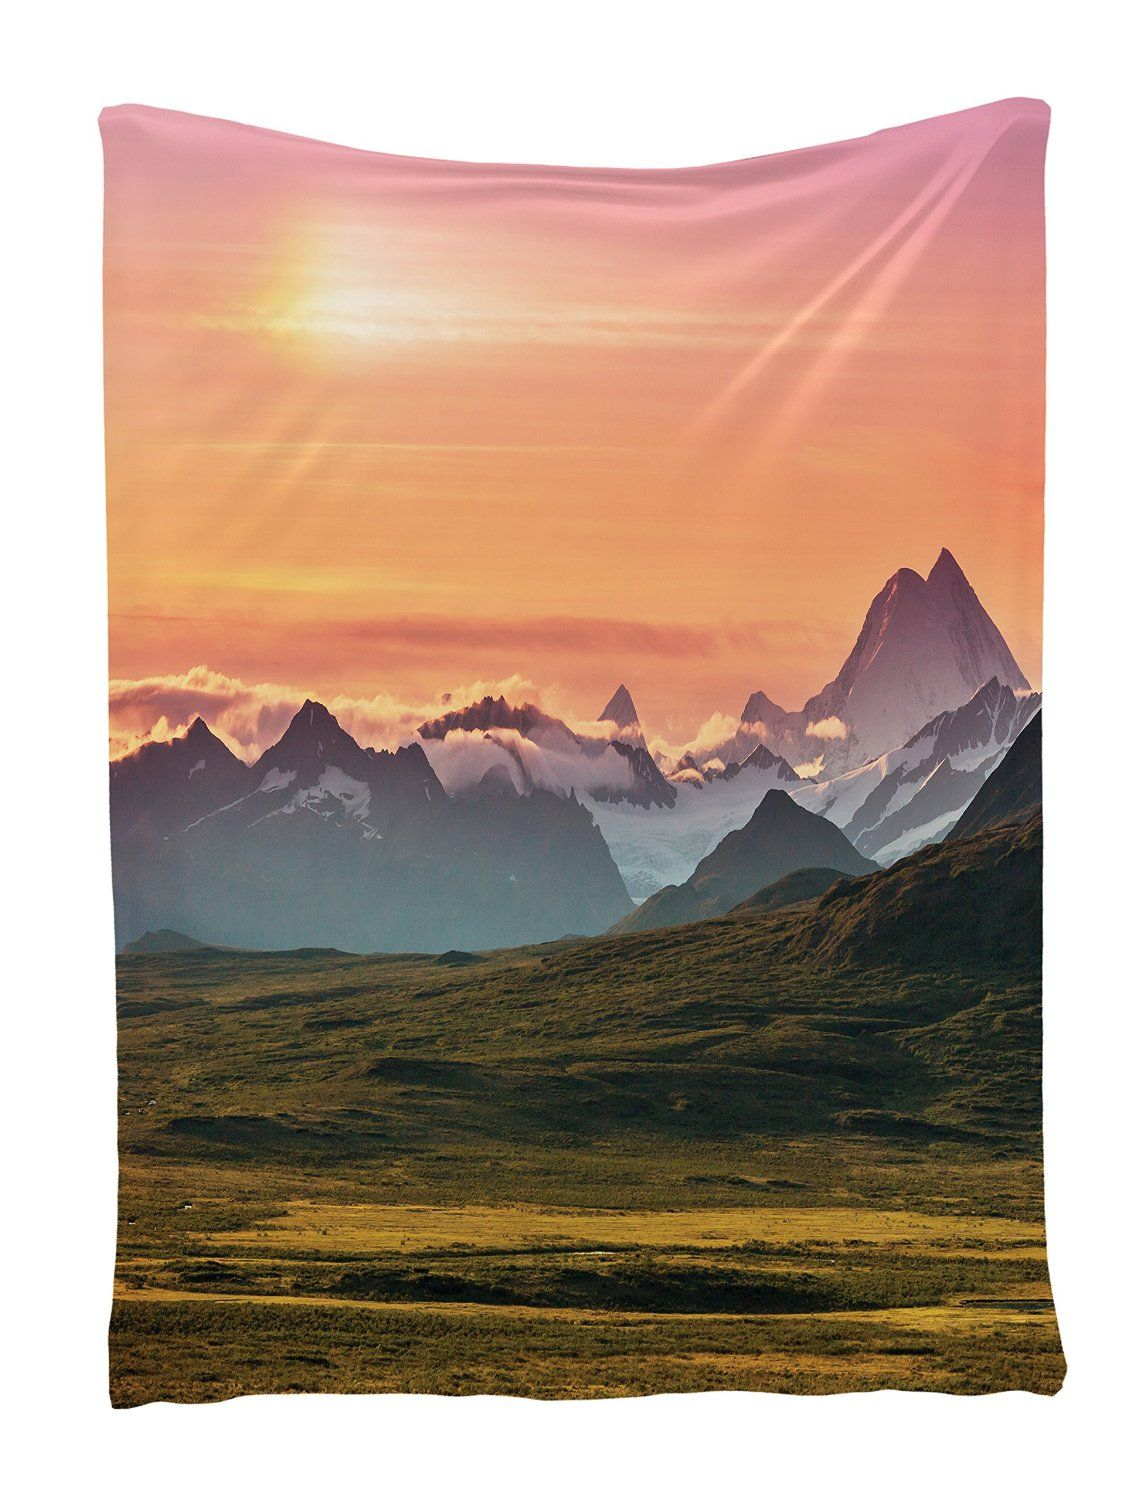 amazon com sunset and mountains wall hanging tapestry with sunset and mountains wall hanging tapestry with romantic pictures art nature home decorations for living room bedroom dorm decor in inches shiny silky satin